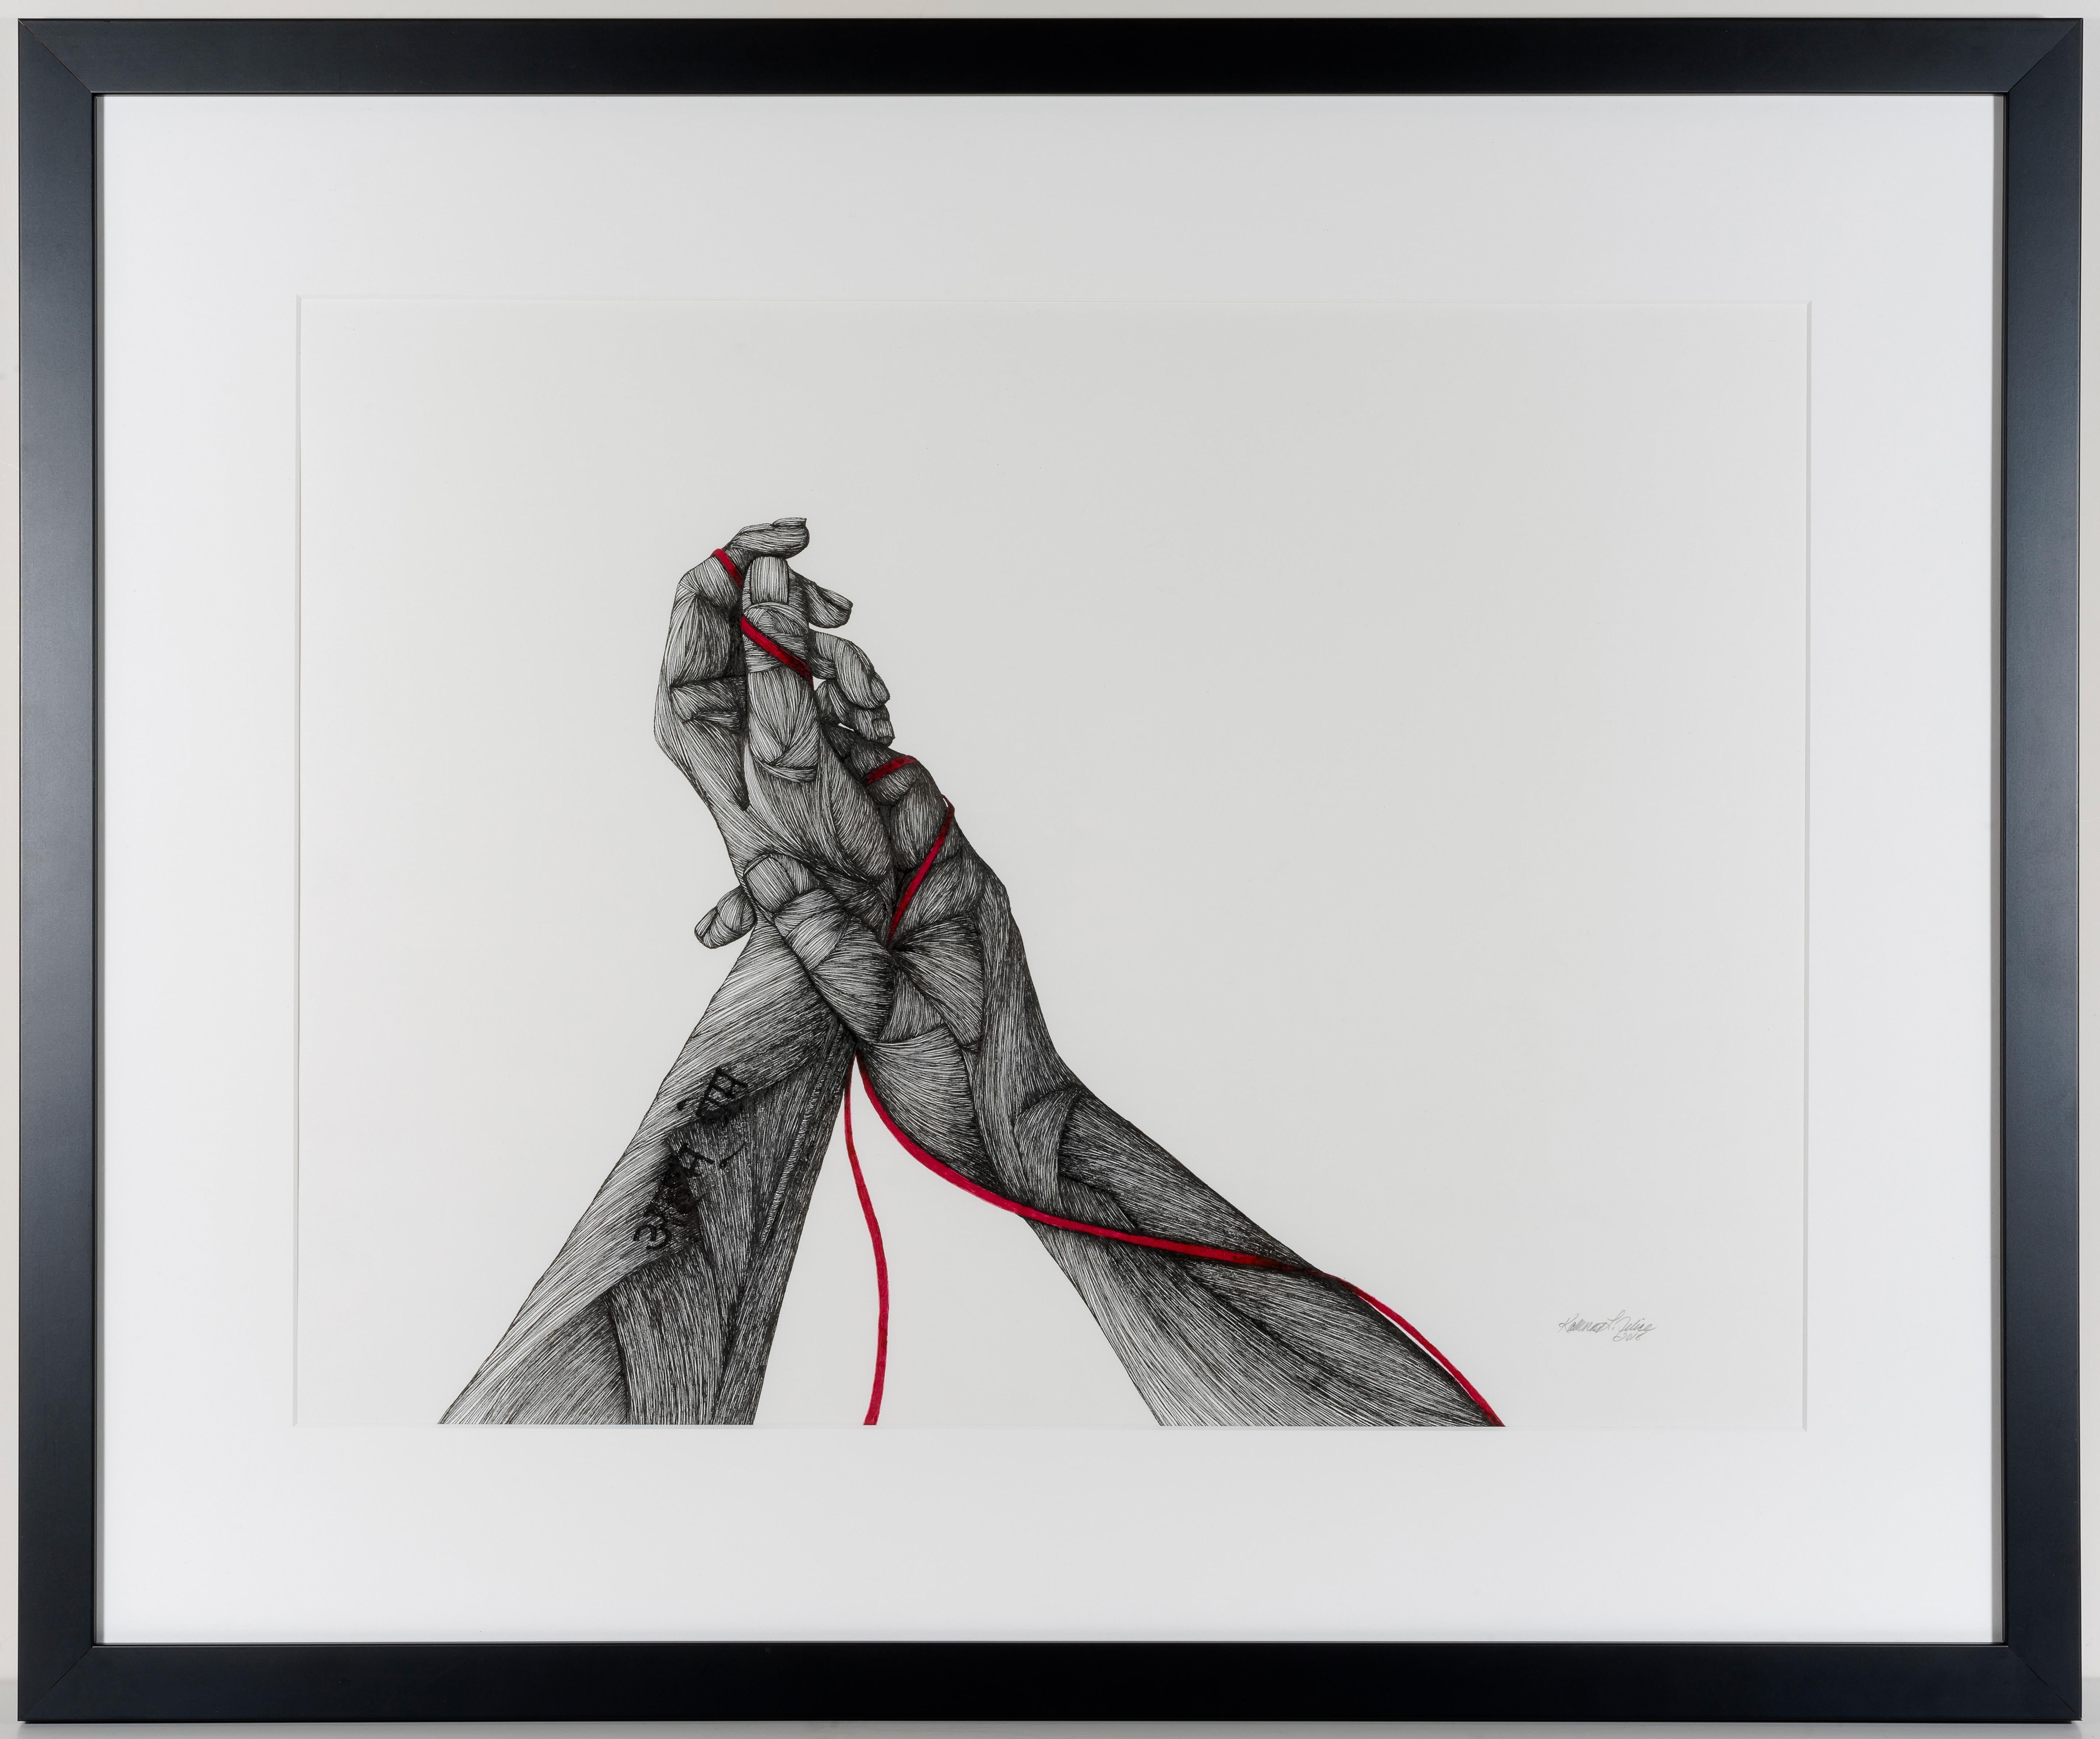 Home- Ink on Paper. Black, White, and Red Figurative Drawing